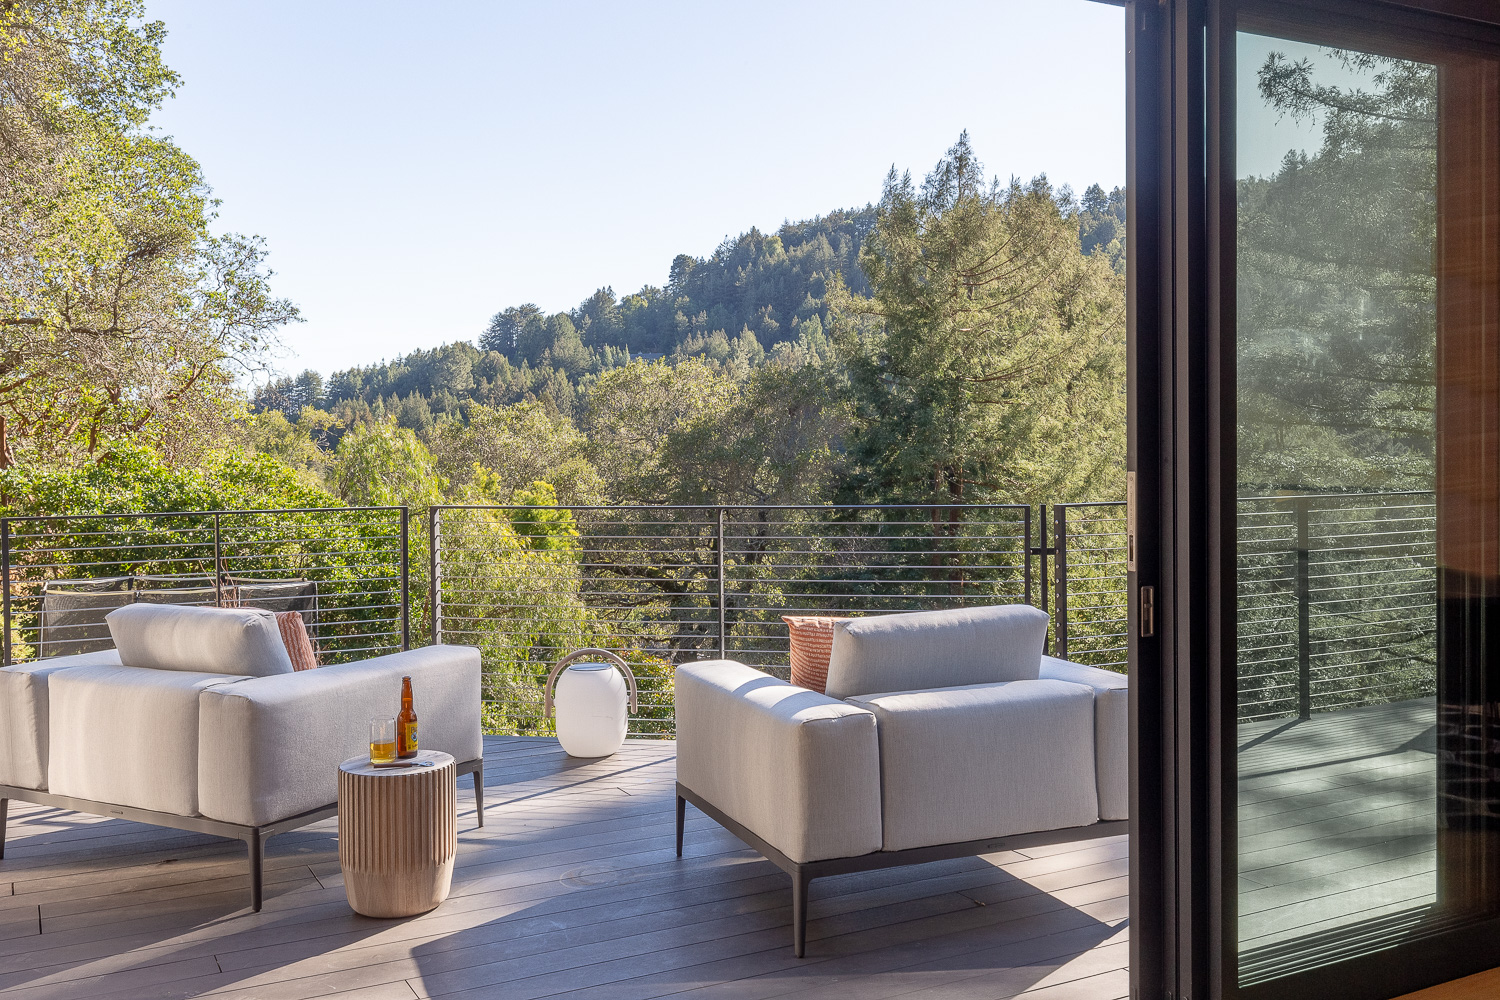 Two plush side chairs and a table from Gloster look out over the beauty of the redwoods. Parlette redesigned the porches with a variety of new elements, including steel cable railings that don't interfere with the views.